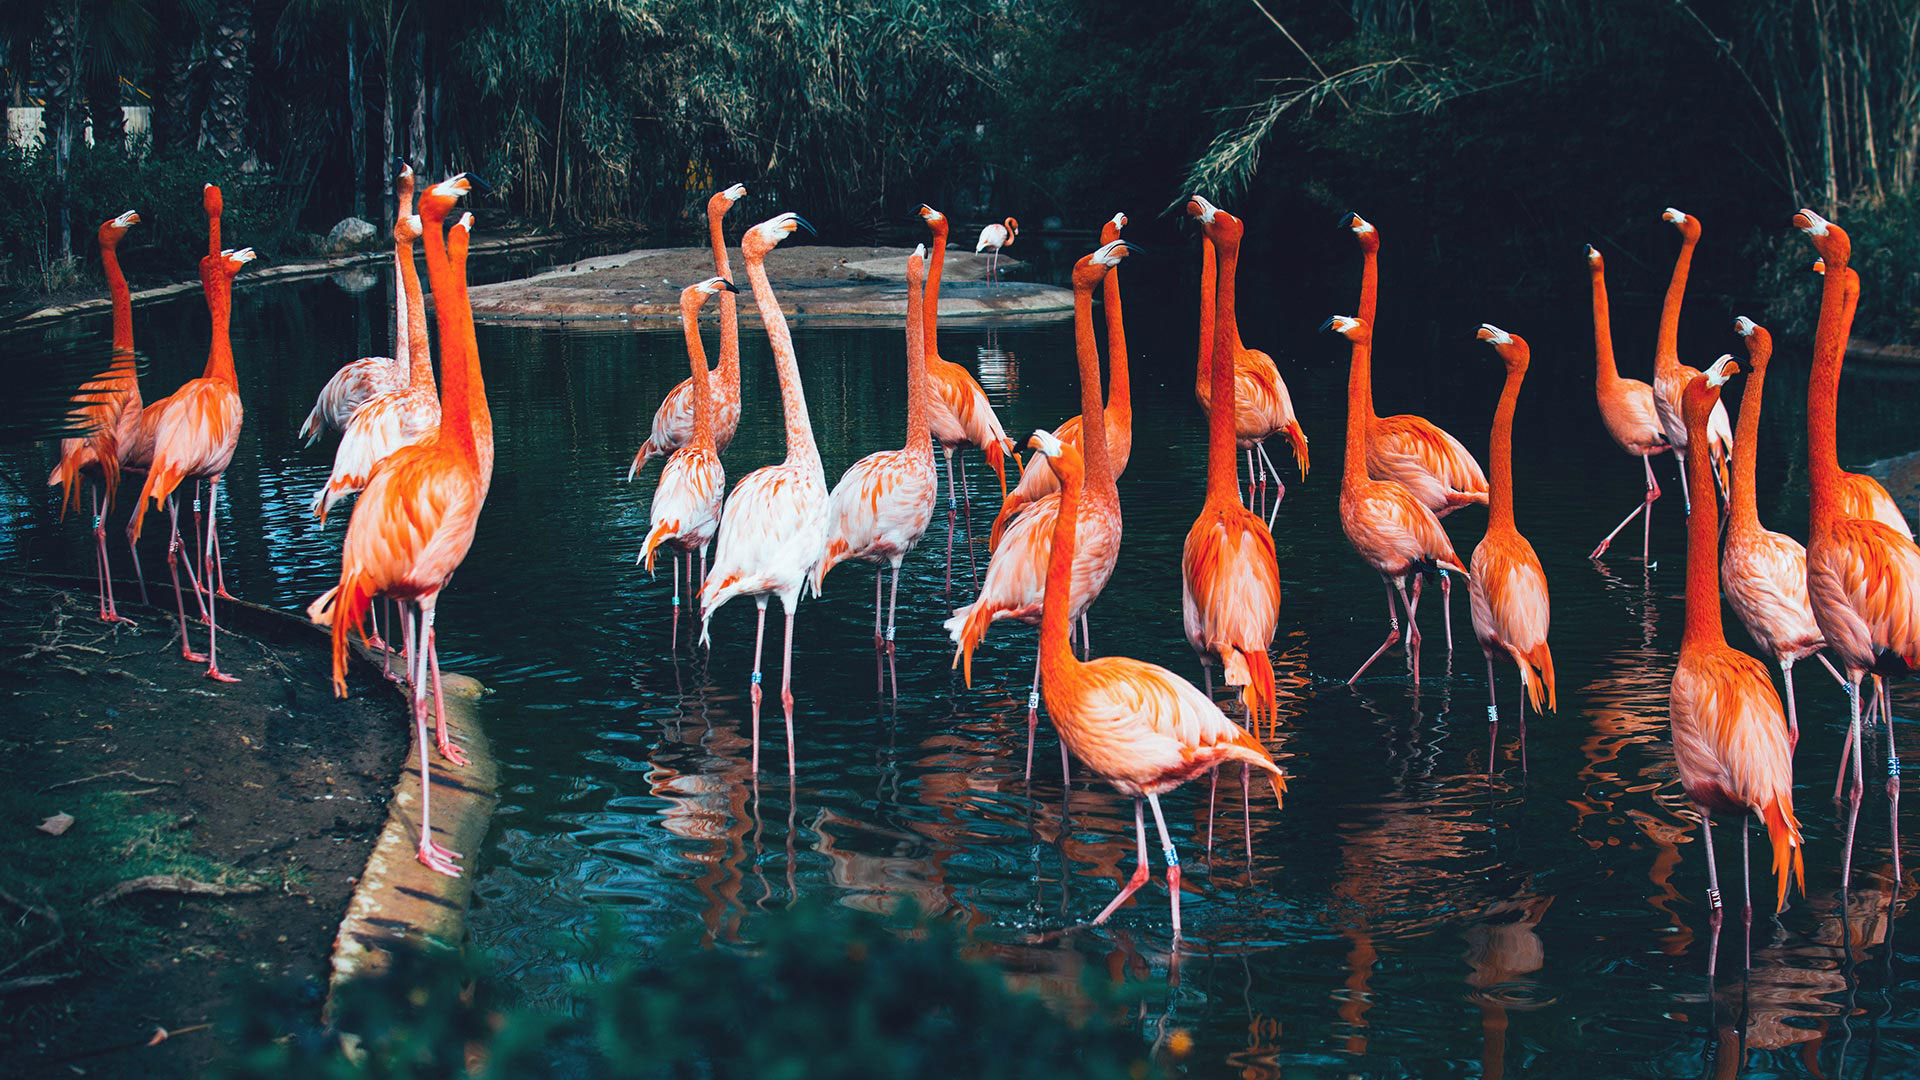 Les flamants roses | Mulhouse Zoo, zoological and botanical park